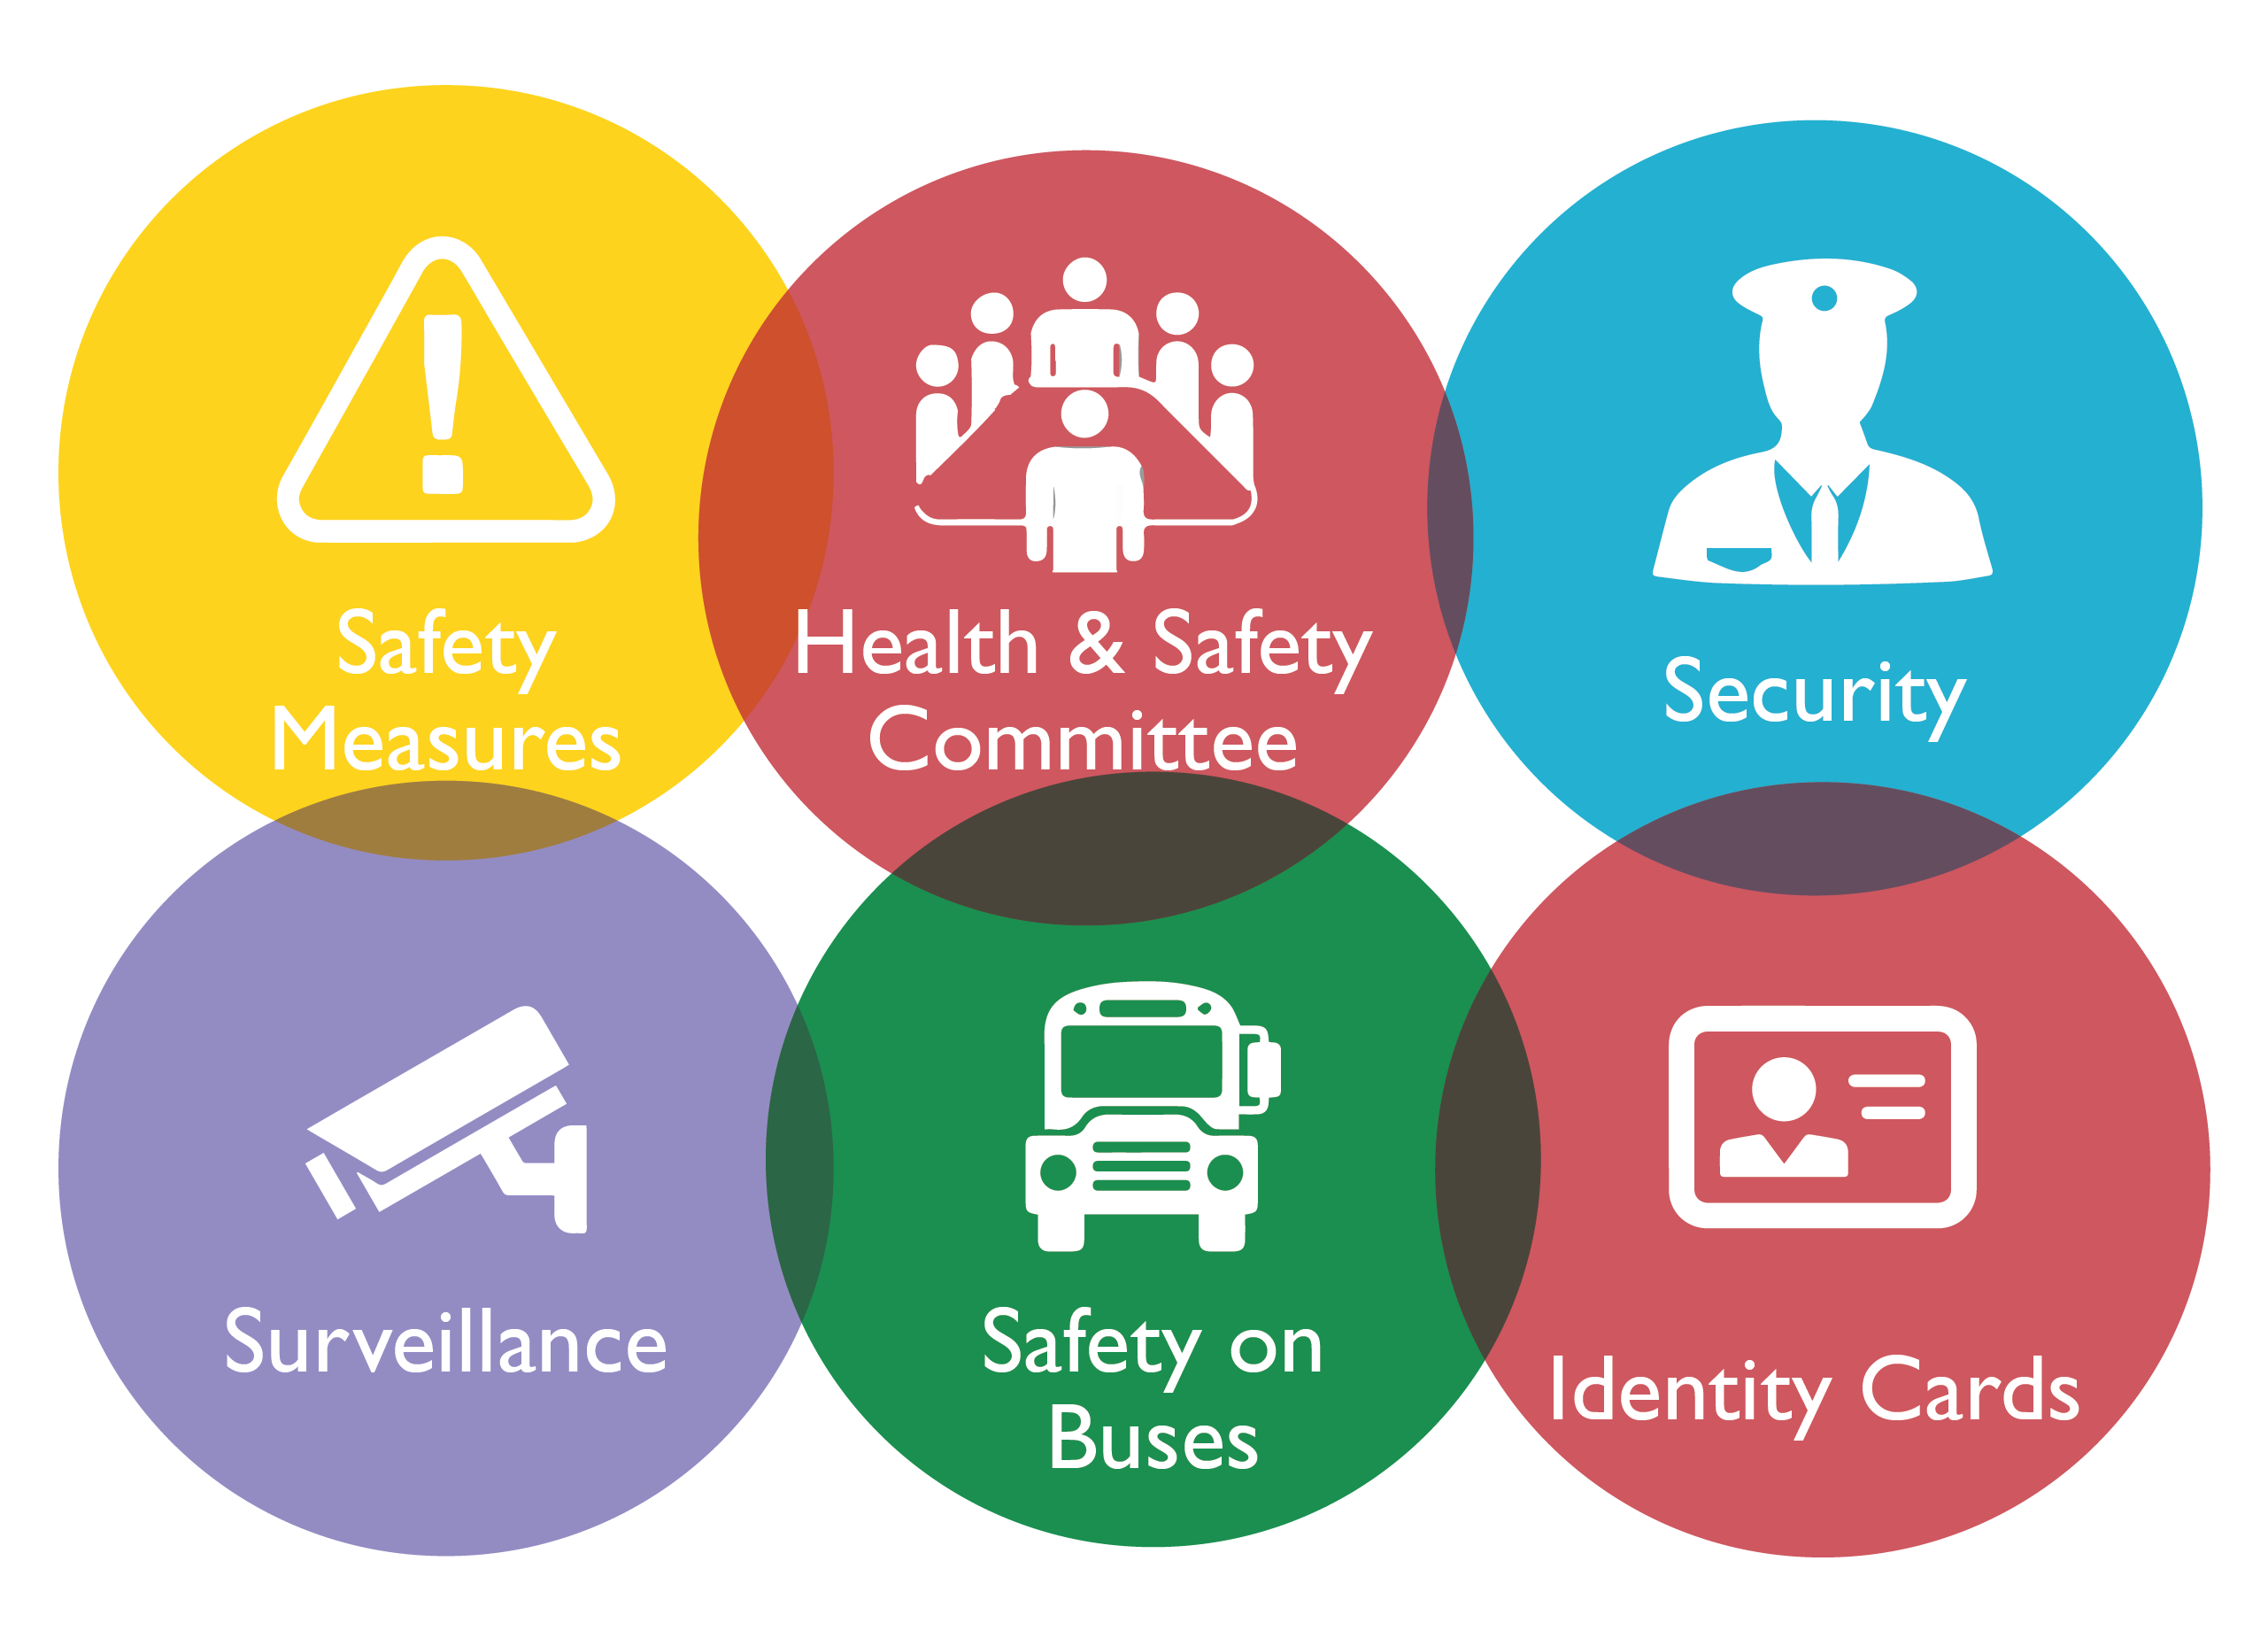 security and safety concerns in schools Have concerned issues of health and safety in schools the following report  • safety and security in many windows the panes of glass have been broken as a result of.